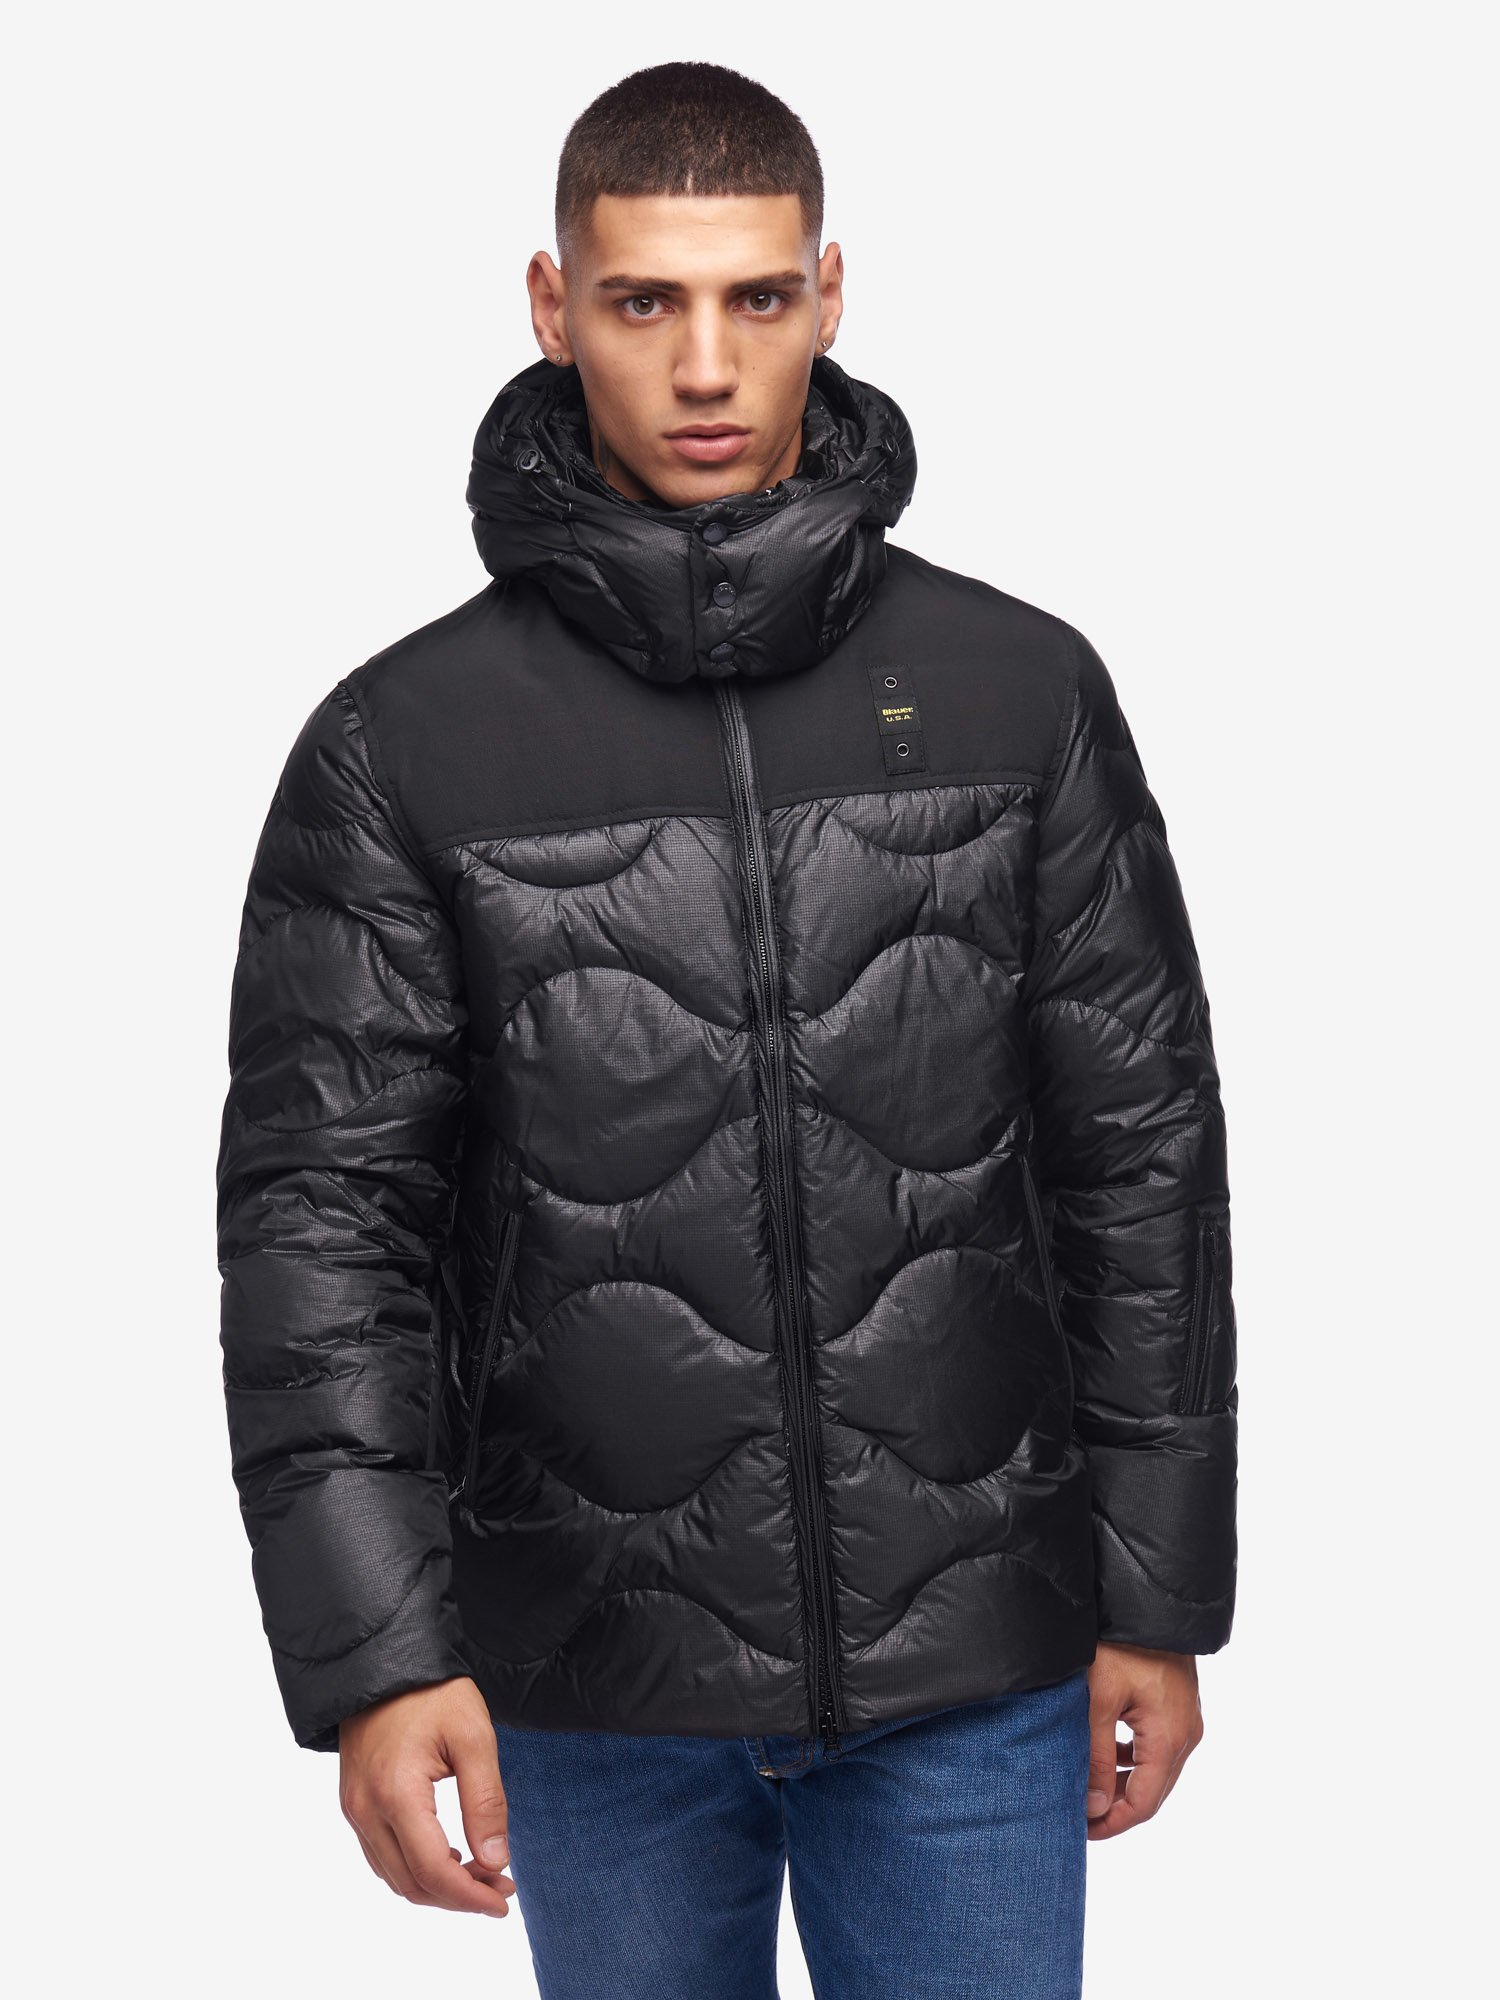 ALI DOWN JACKET WITH THREE POCKETS - Blauer